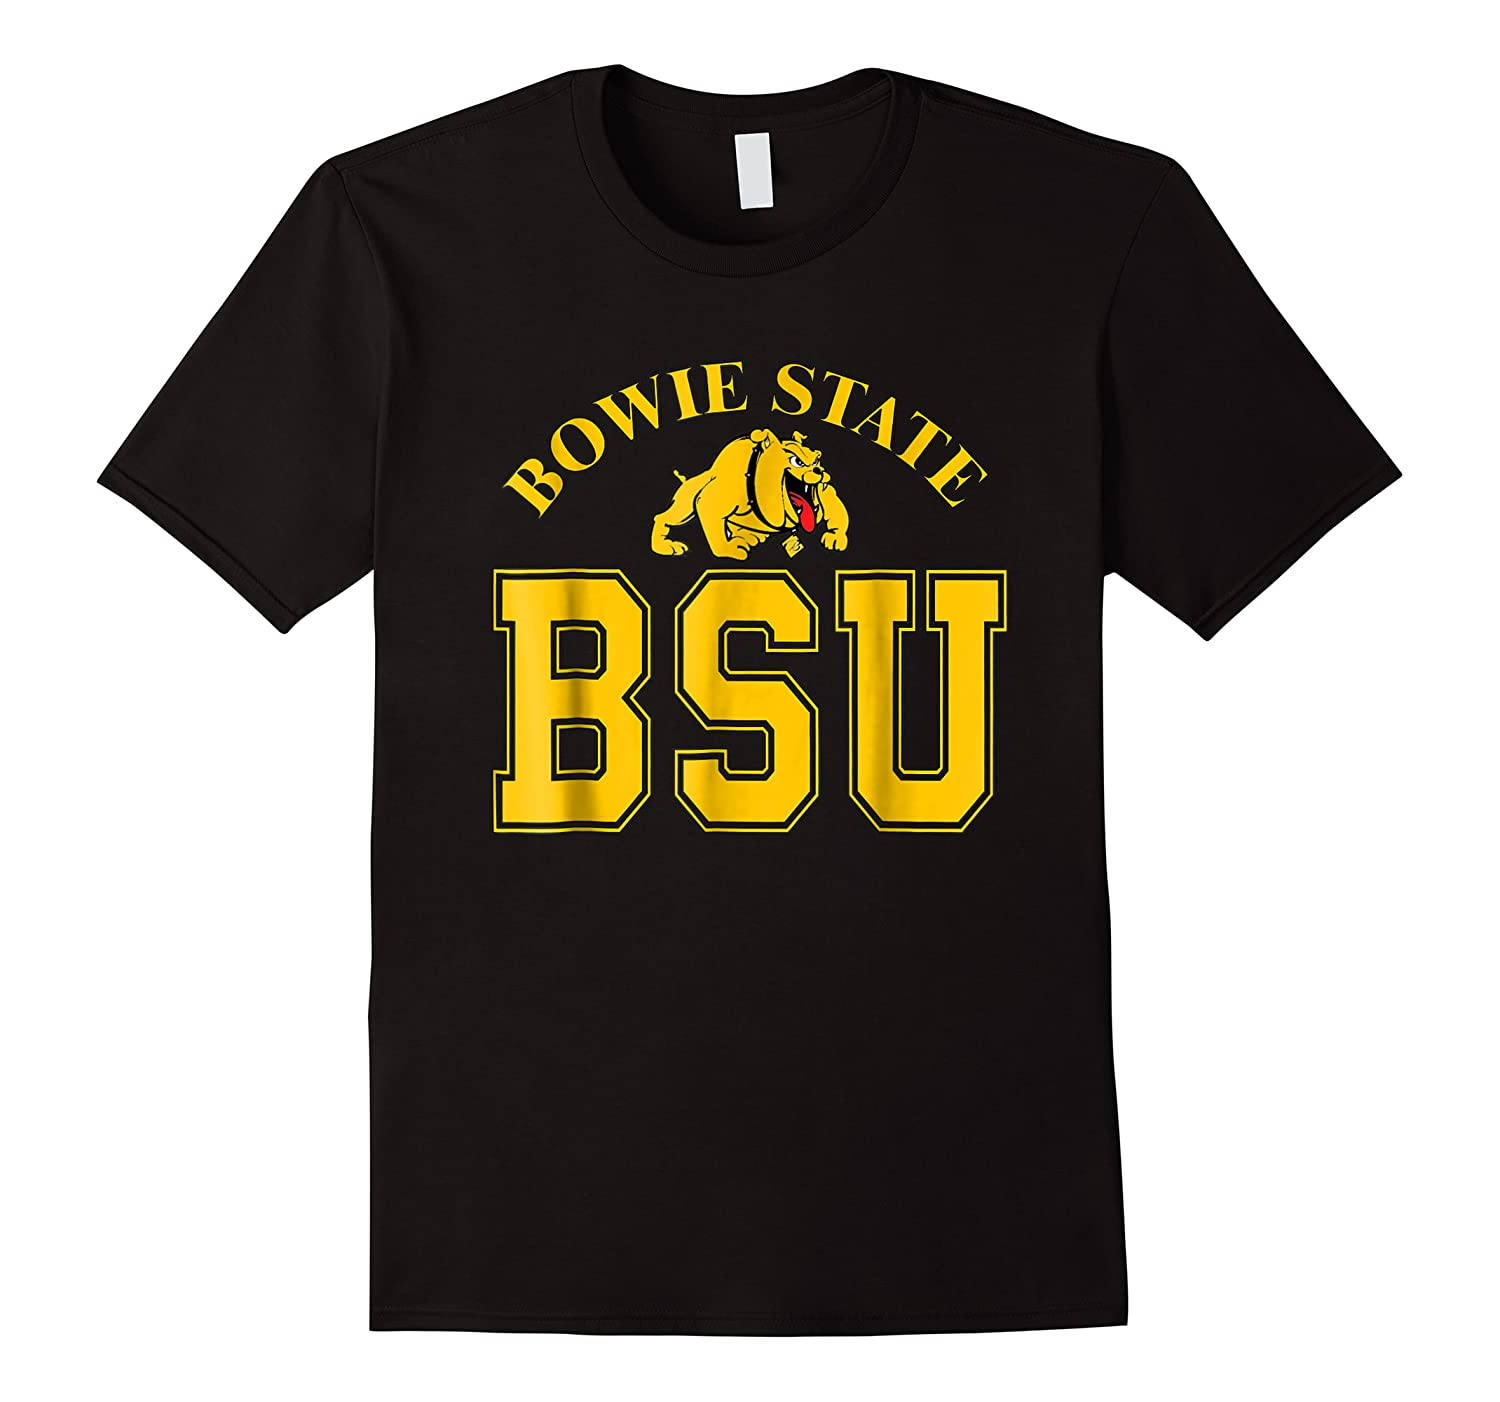 Bowie State 1865 University Apparel Shirts